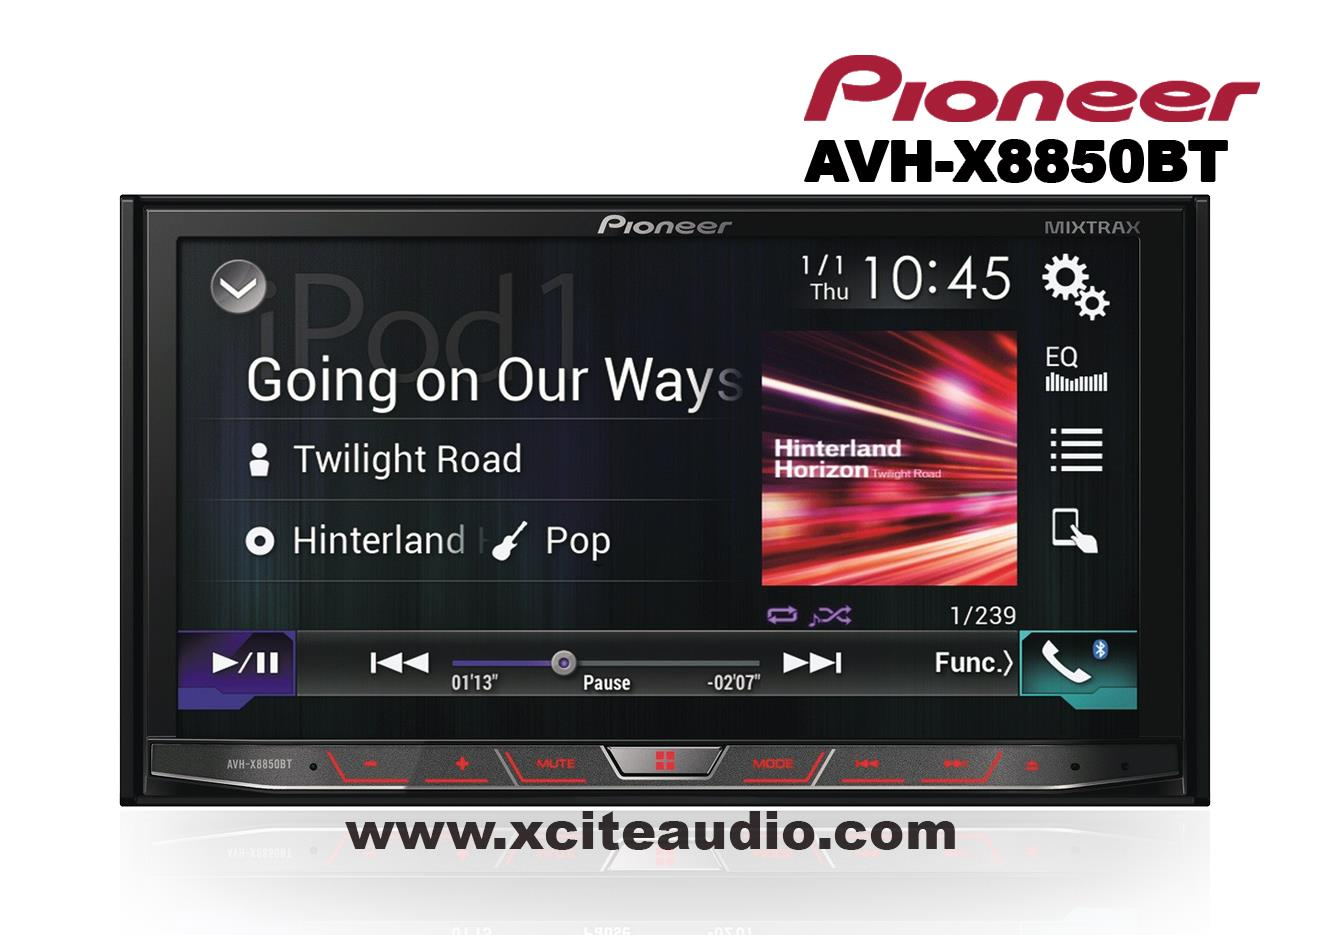 Pioneer AVH-X8850BT 7' WVGA Touchscreen Display MIXTRAX Bluetooth